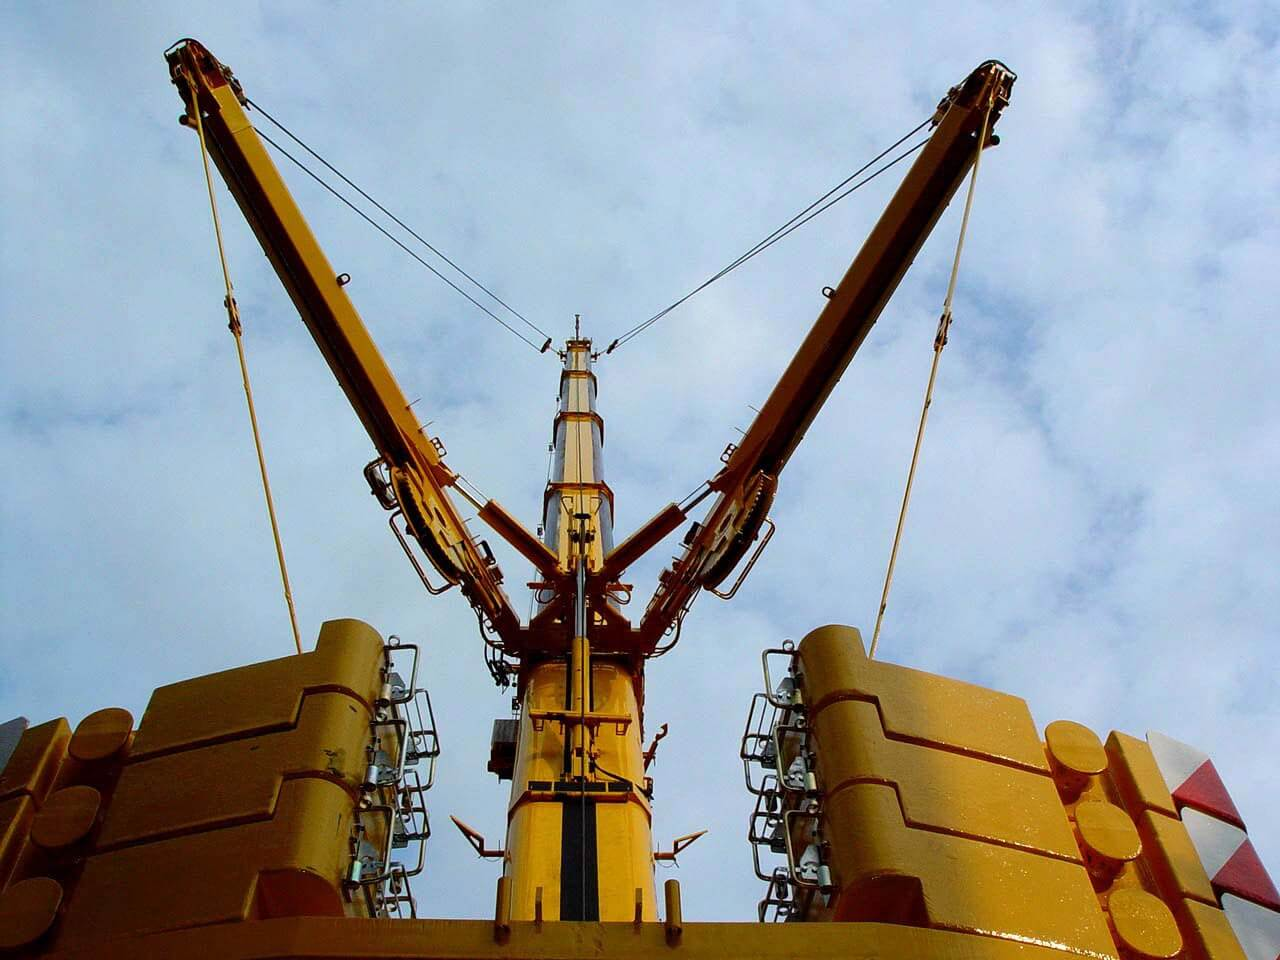 A picture of a heavy duty NMT Crane